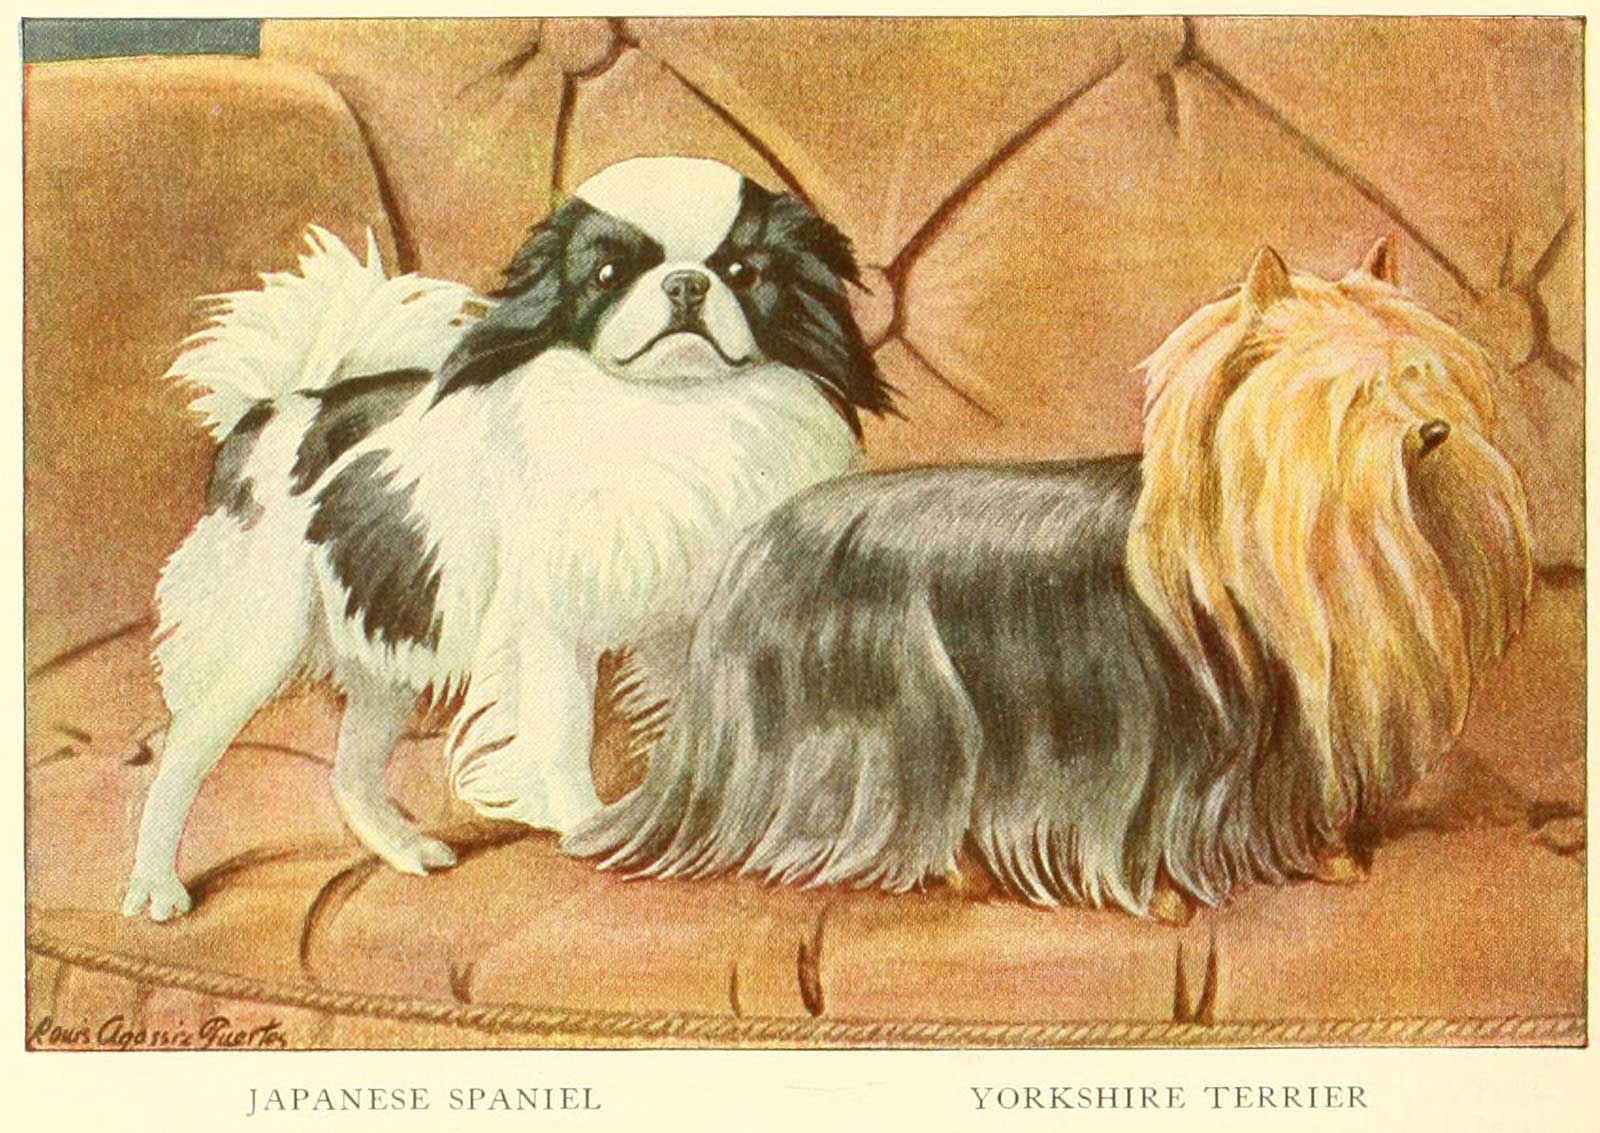 YORKSHIRE TERRIER – Information About Dogs